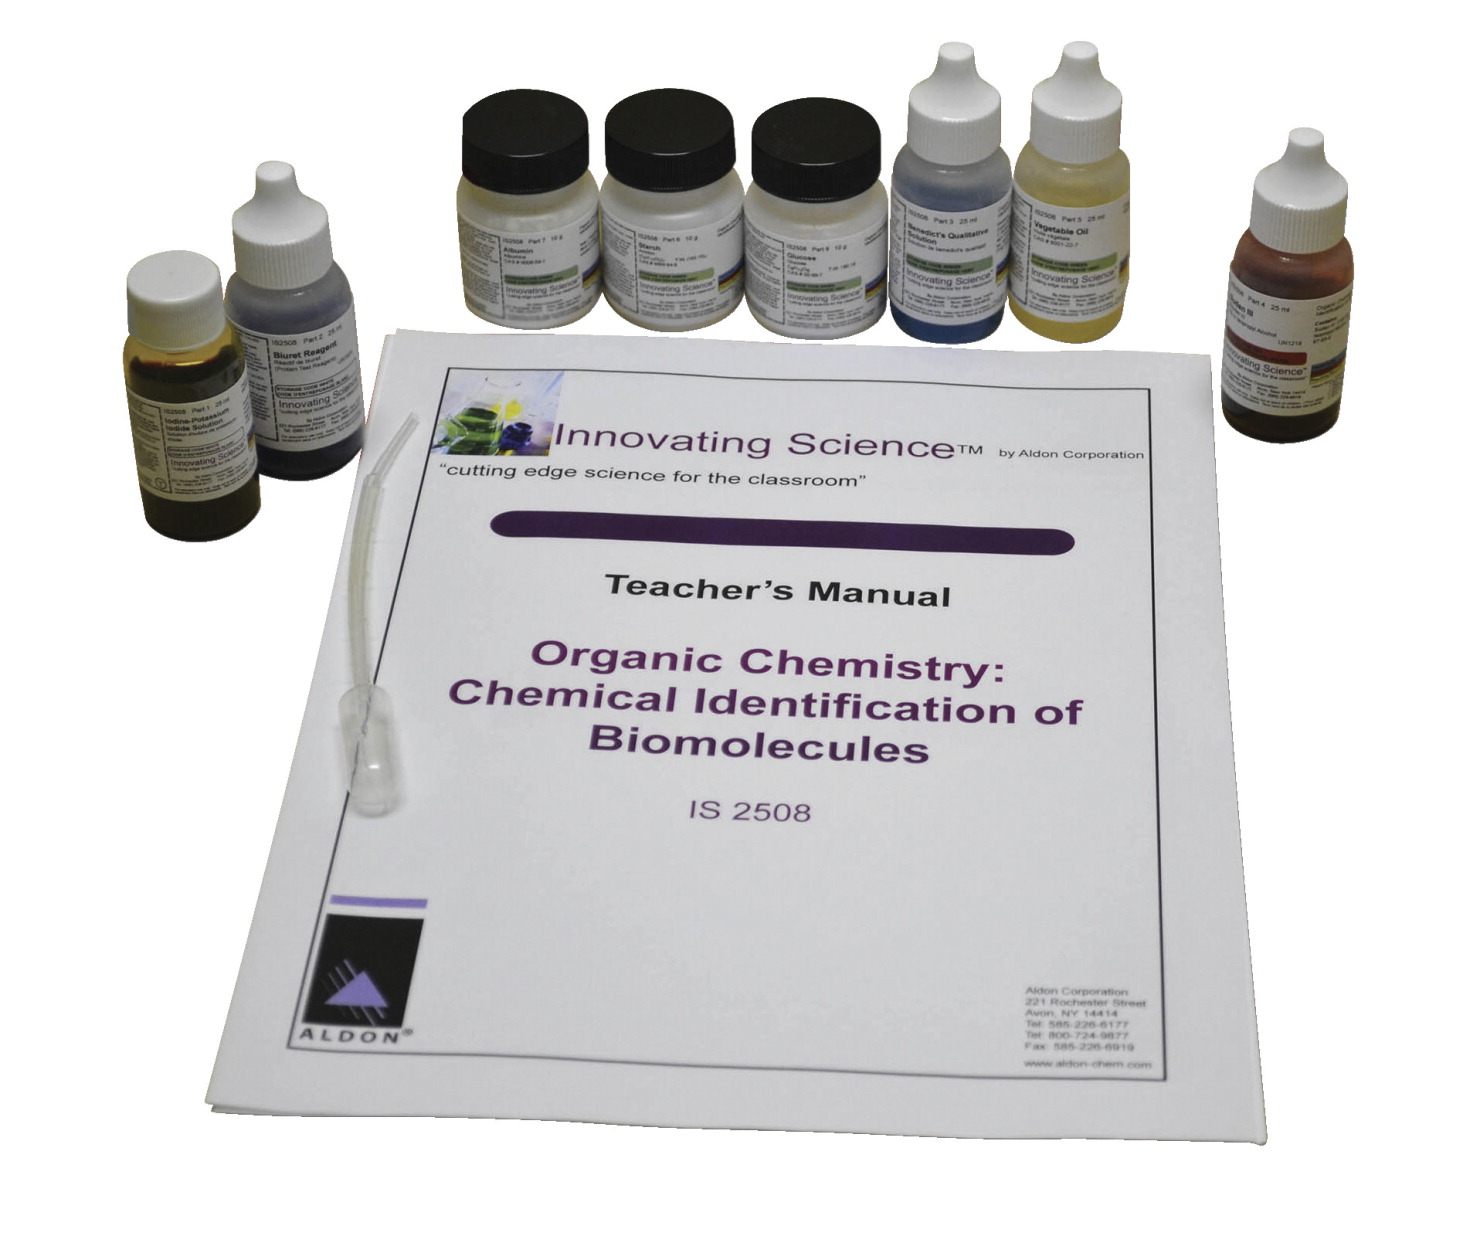 Innovating Science Biomolecules Identification Kit, Assorted Colors